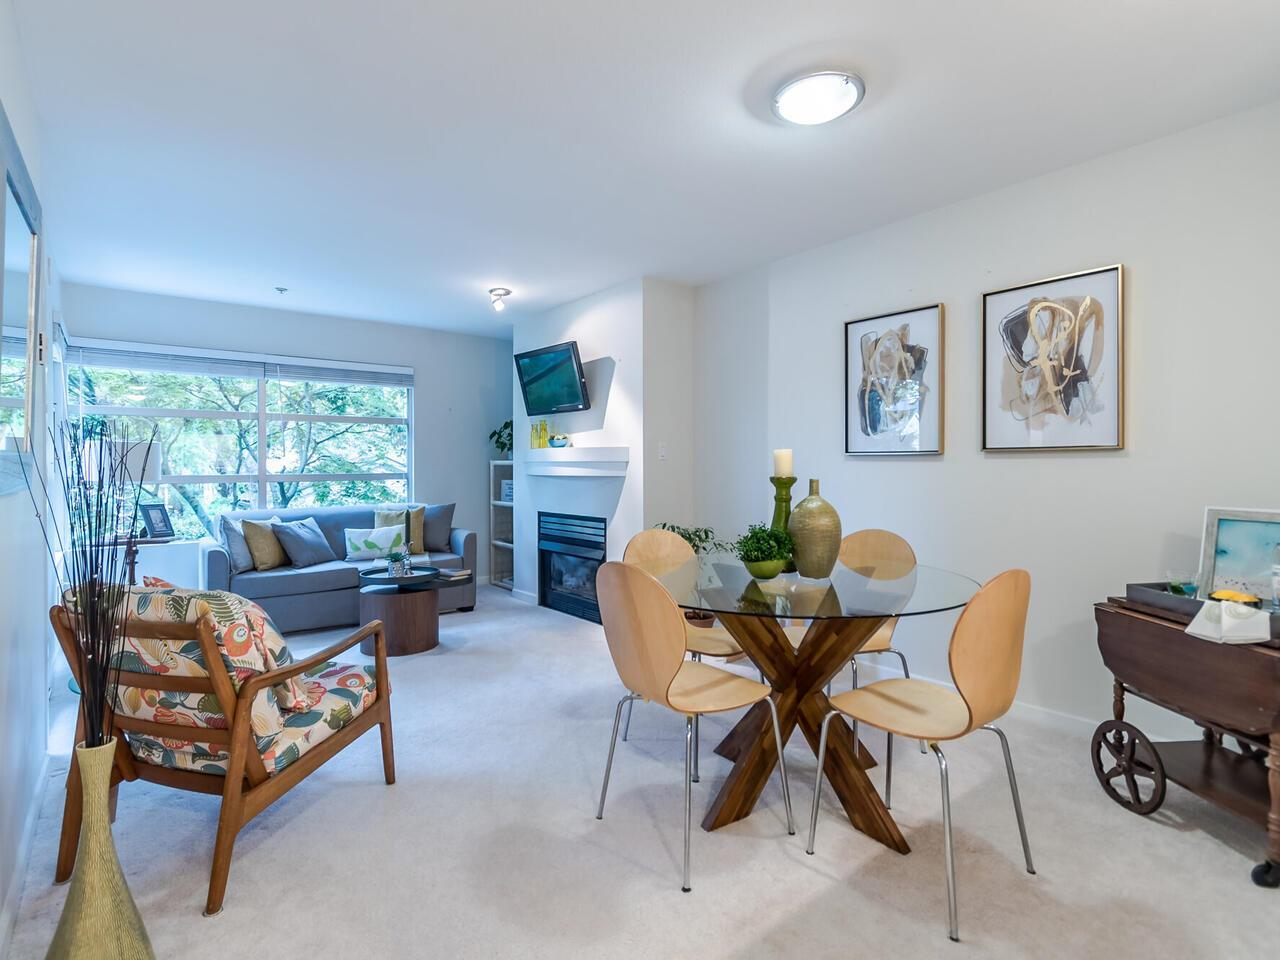 204 3083 W 4TH AVENUE - Kitsilano Apartment/Condo for sale, 1 Bedroom (R2578879)